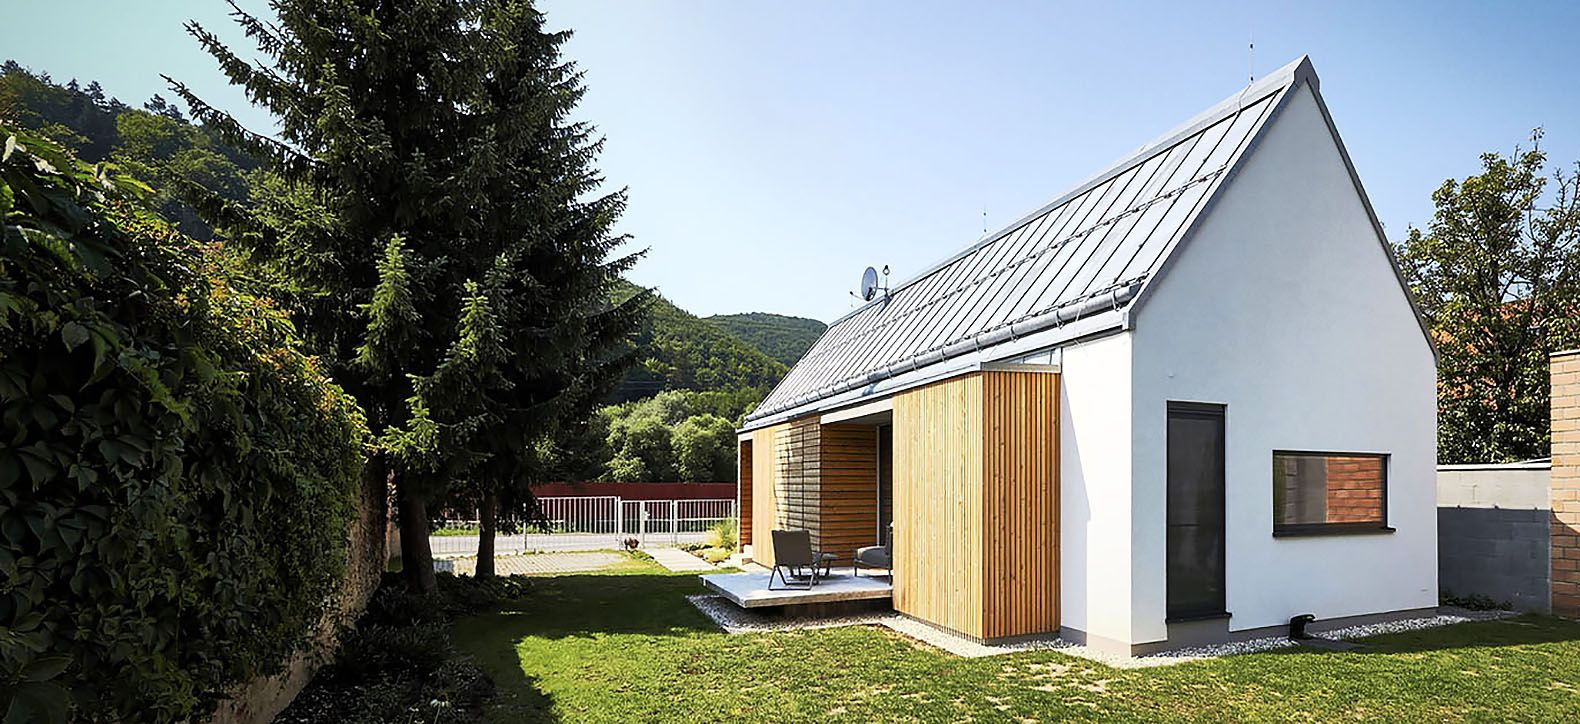 Best Slovakian Home Uses Steko A Unique Construction Method From Switzerland Architecture 400 x 300